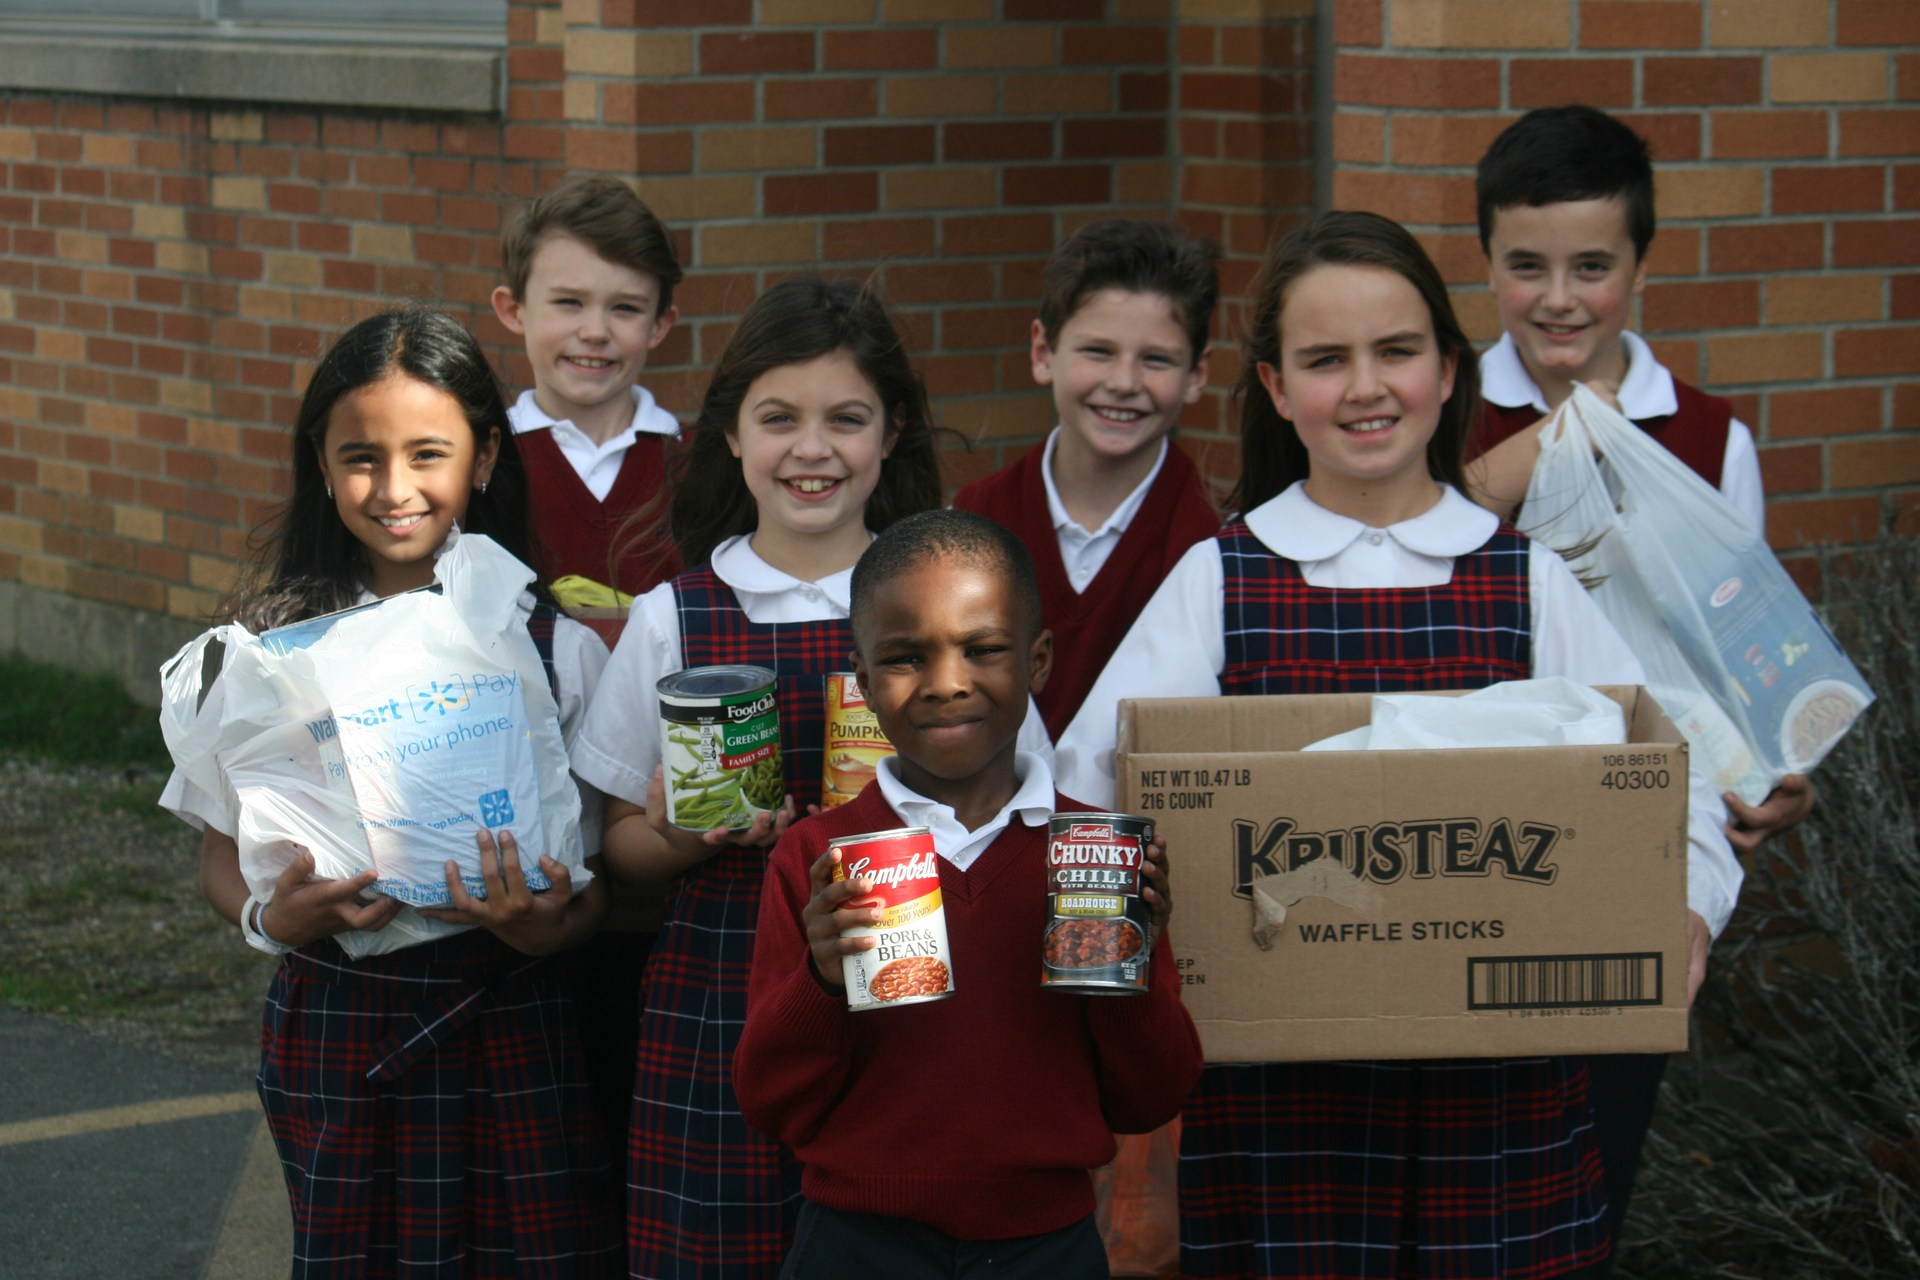 Students donate food items for Extending Hands project